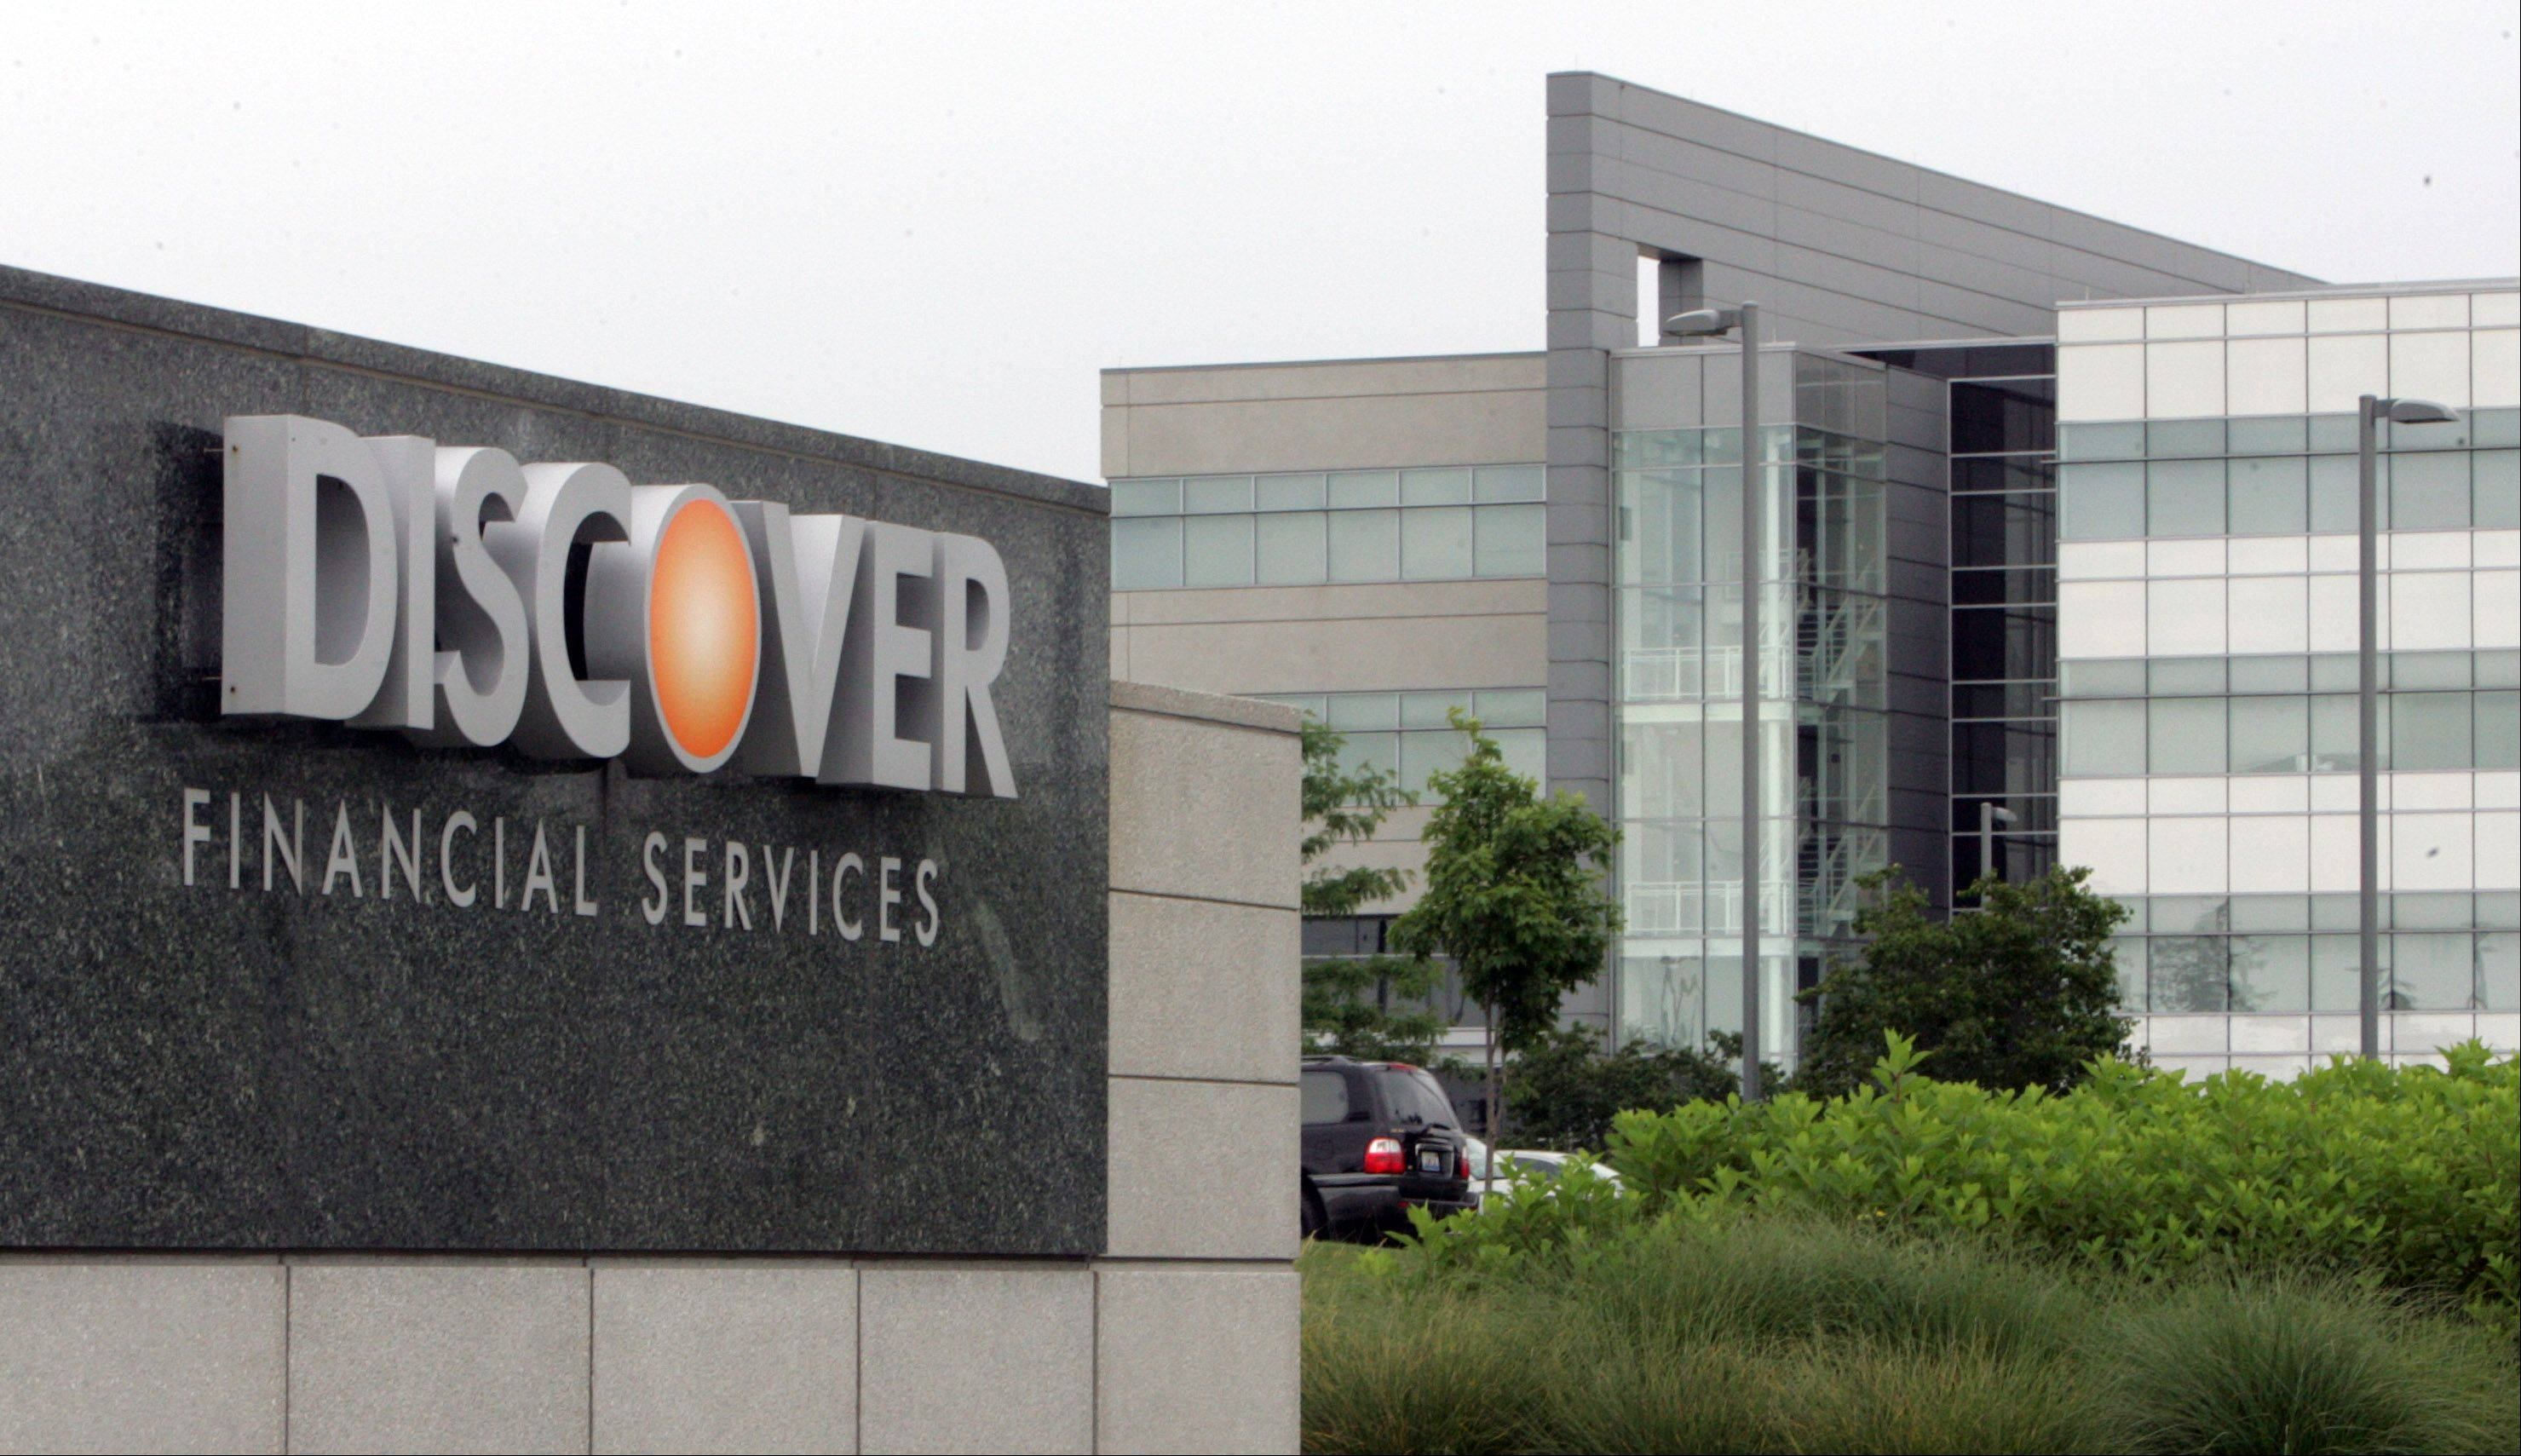 Discover Financial Services Headquarters in Riverwoods at Lake Cook Road and Discover Way.